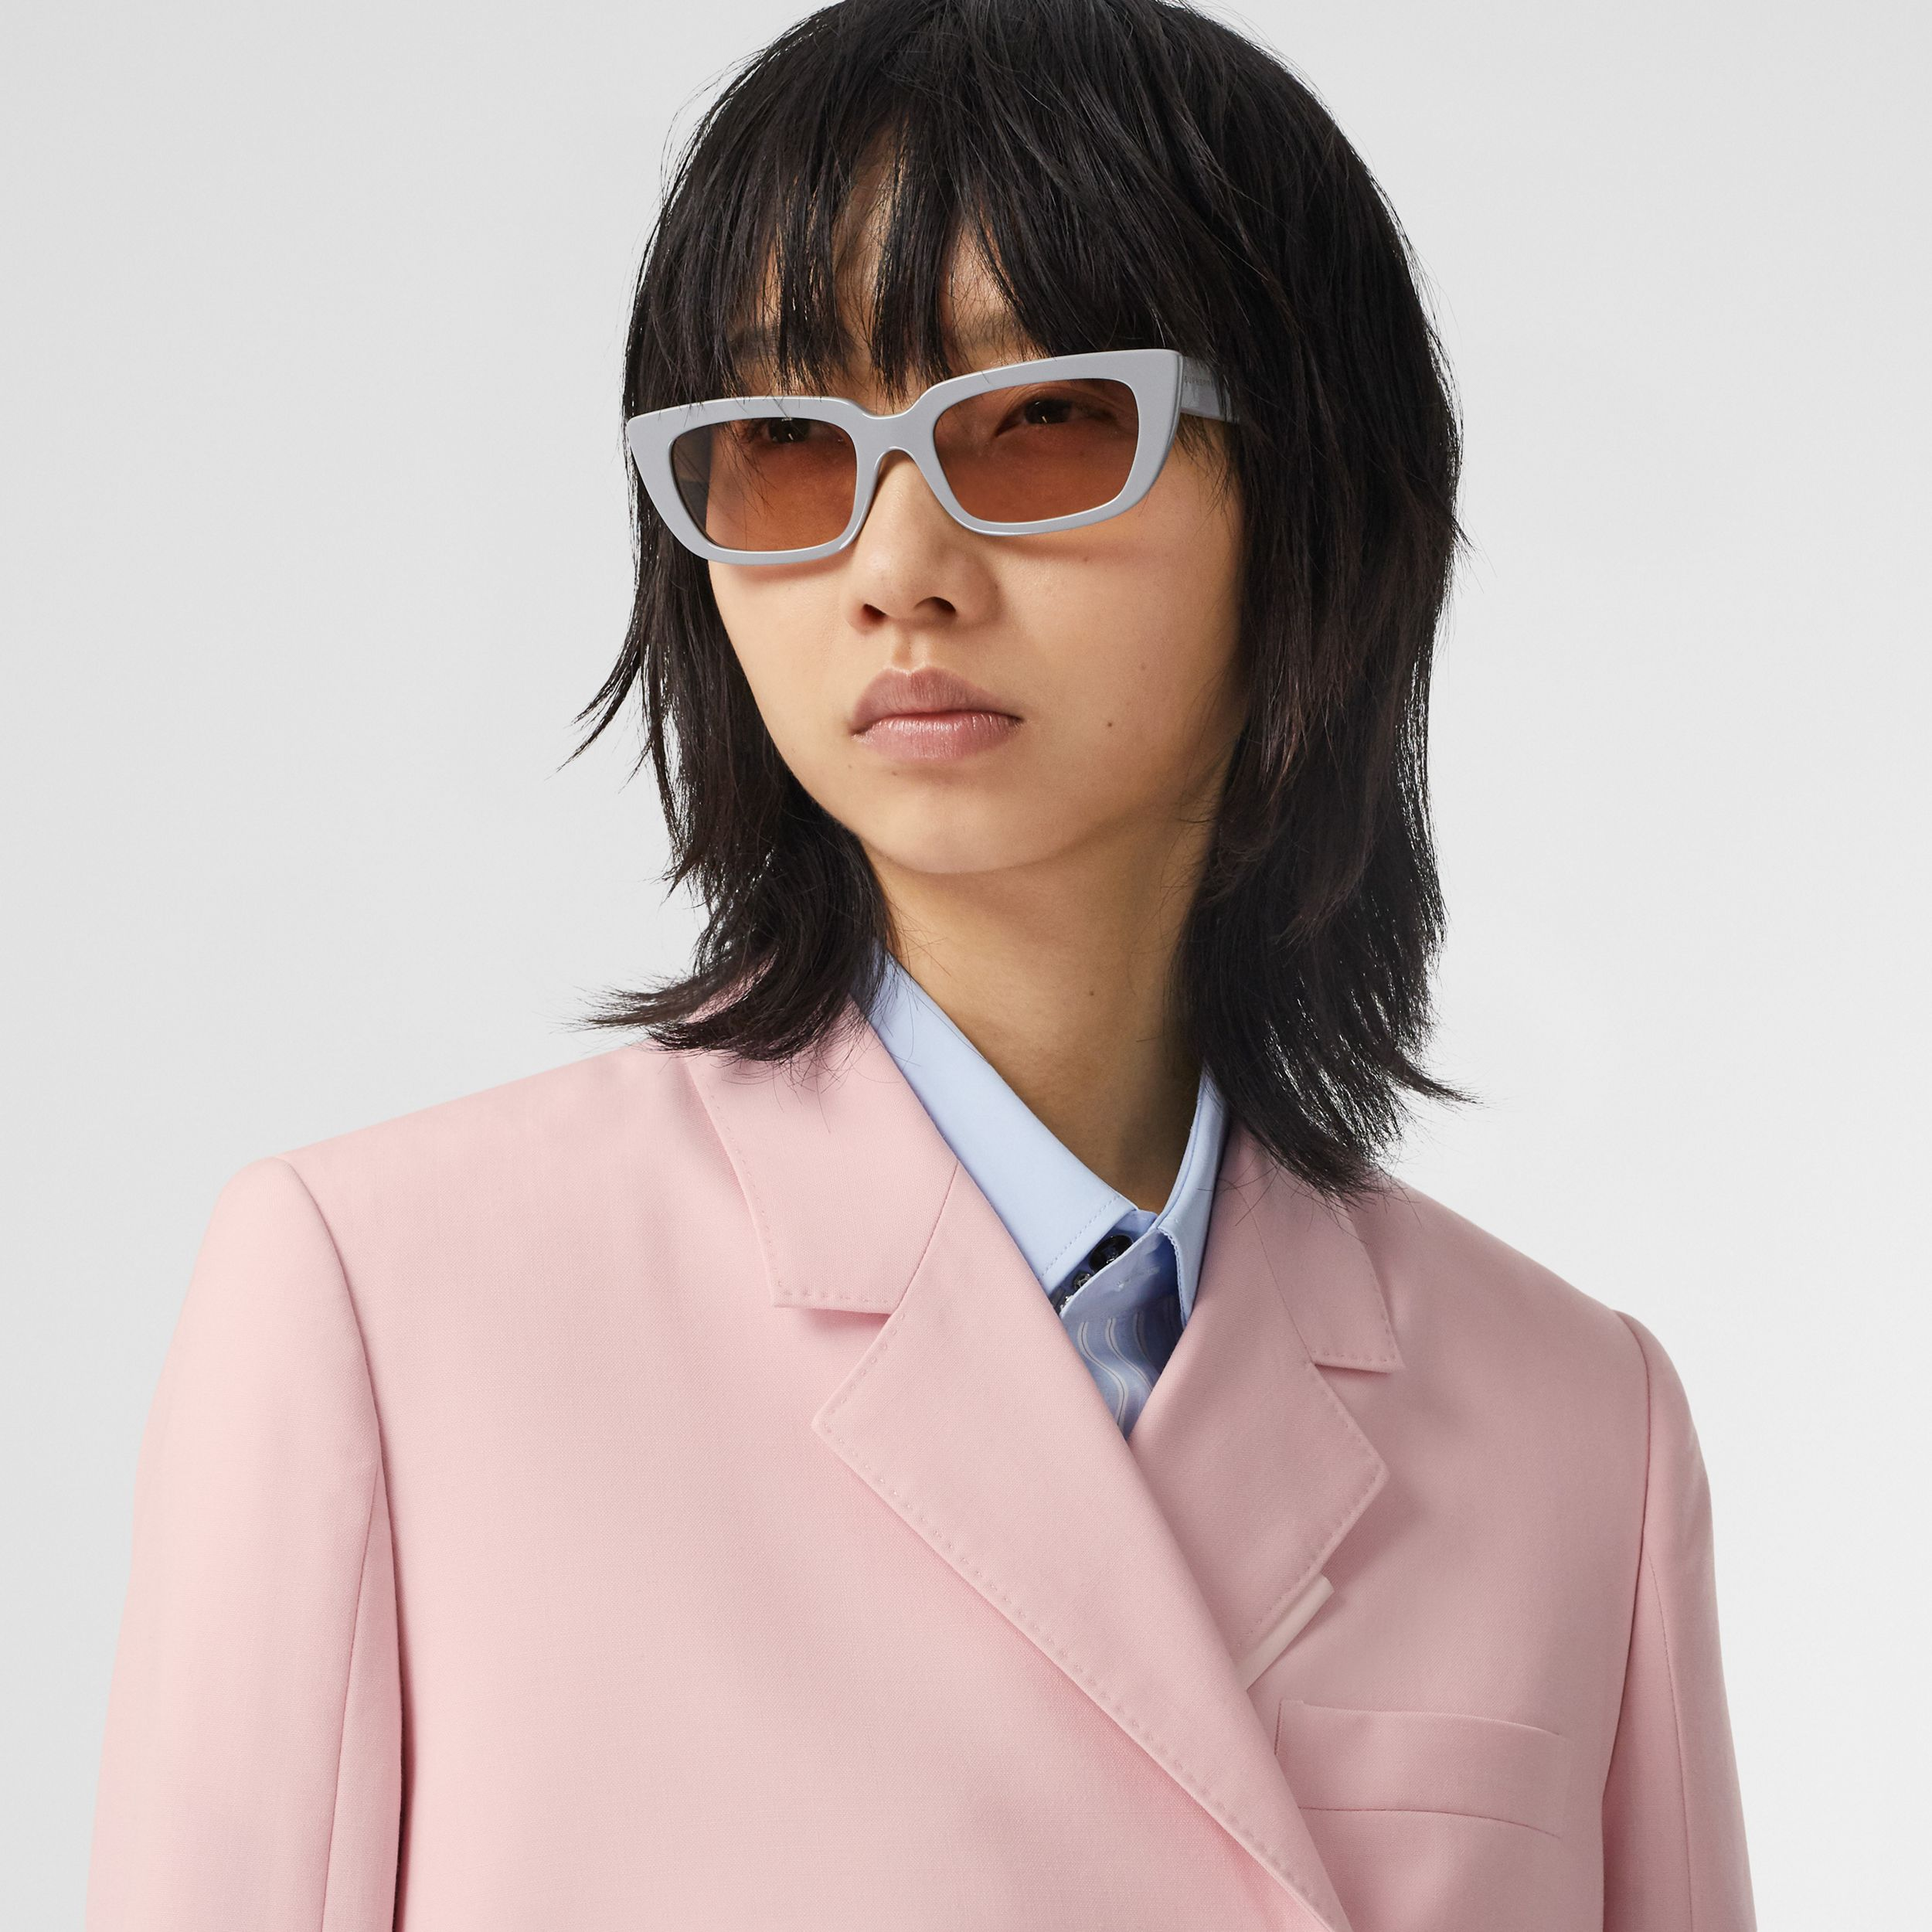 Tumbled Wool Double-breasted Blazer in Soft Pink - Women | Burberry Canada - 2